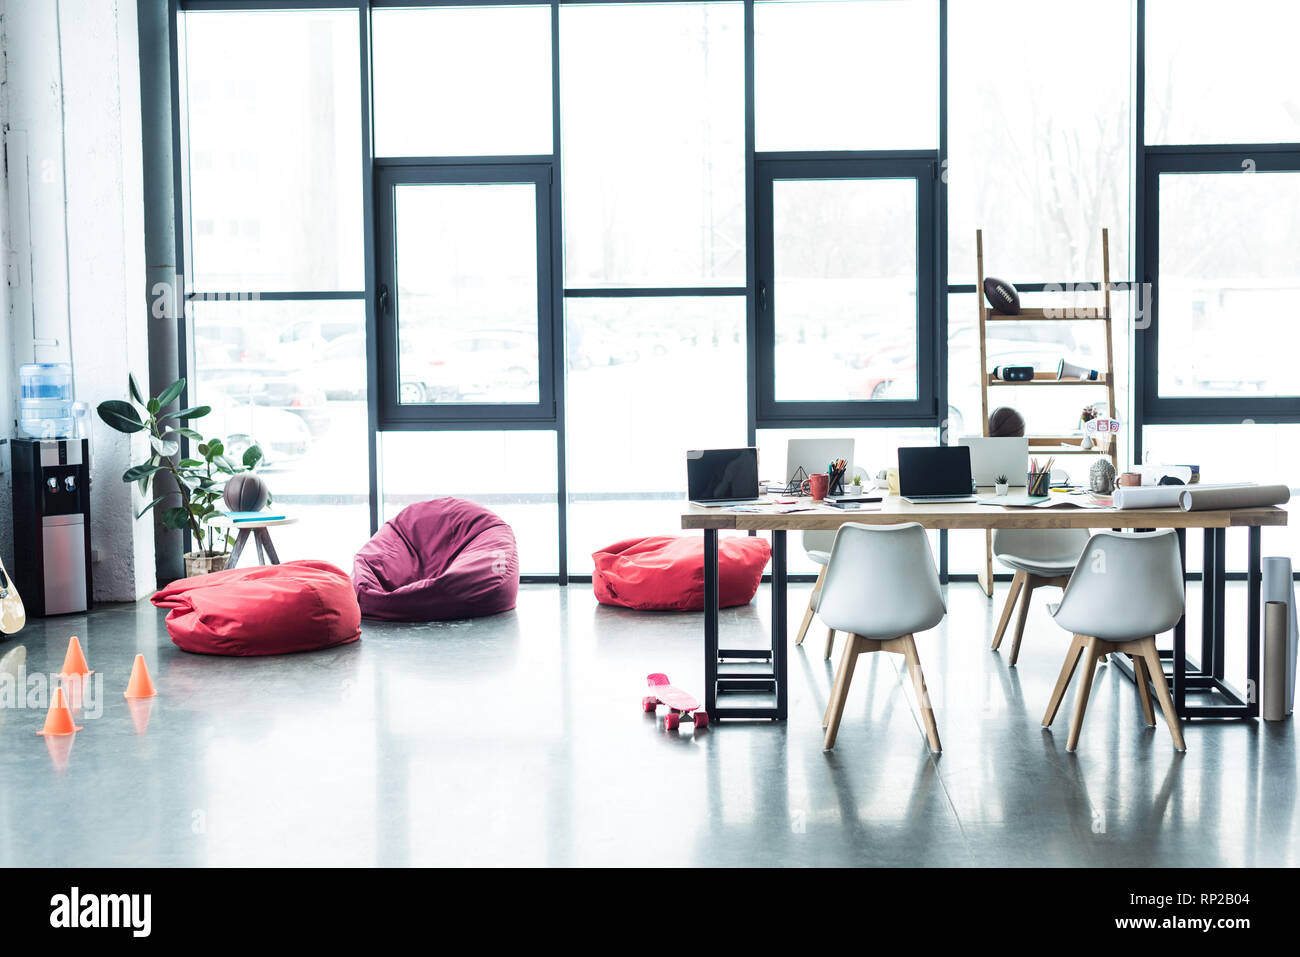 modern design of spacious loft office with bean bag chairs and table with laptops - Stock Image